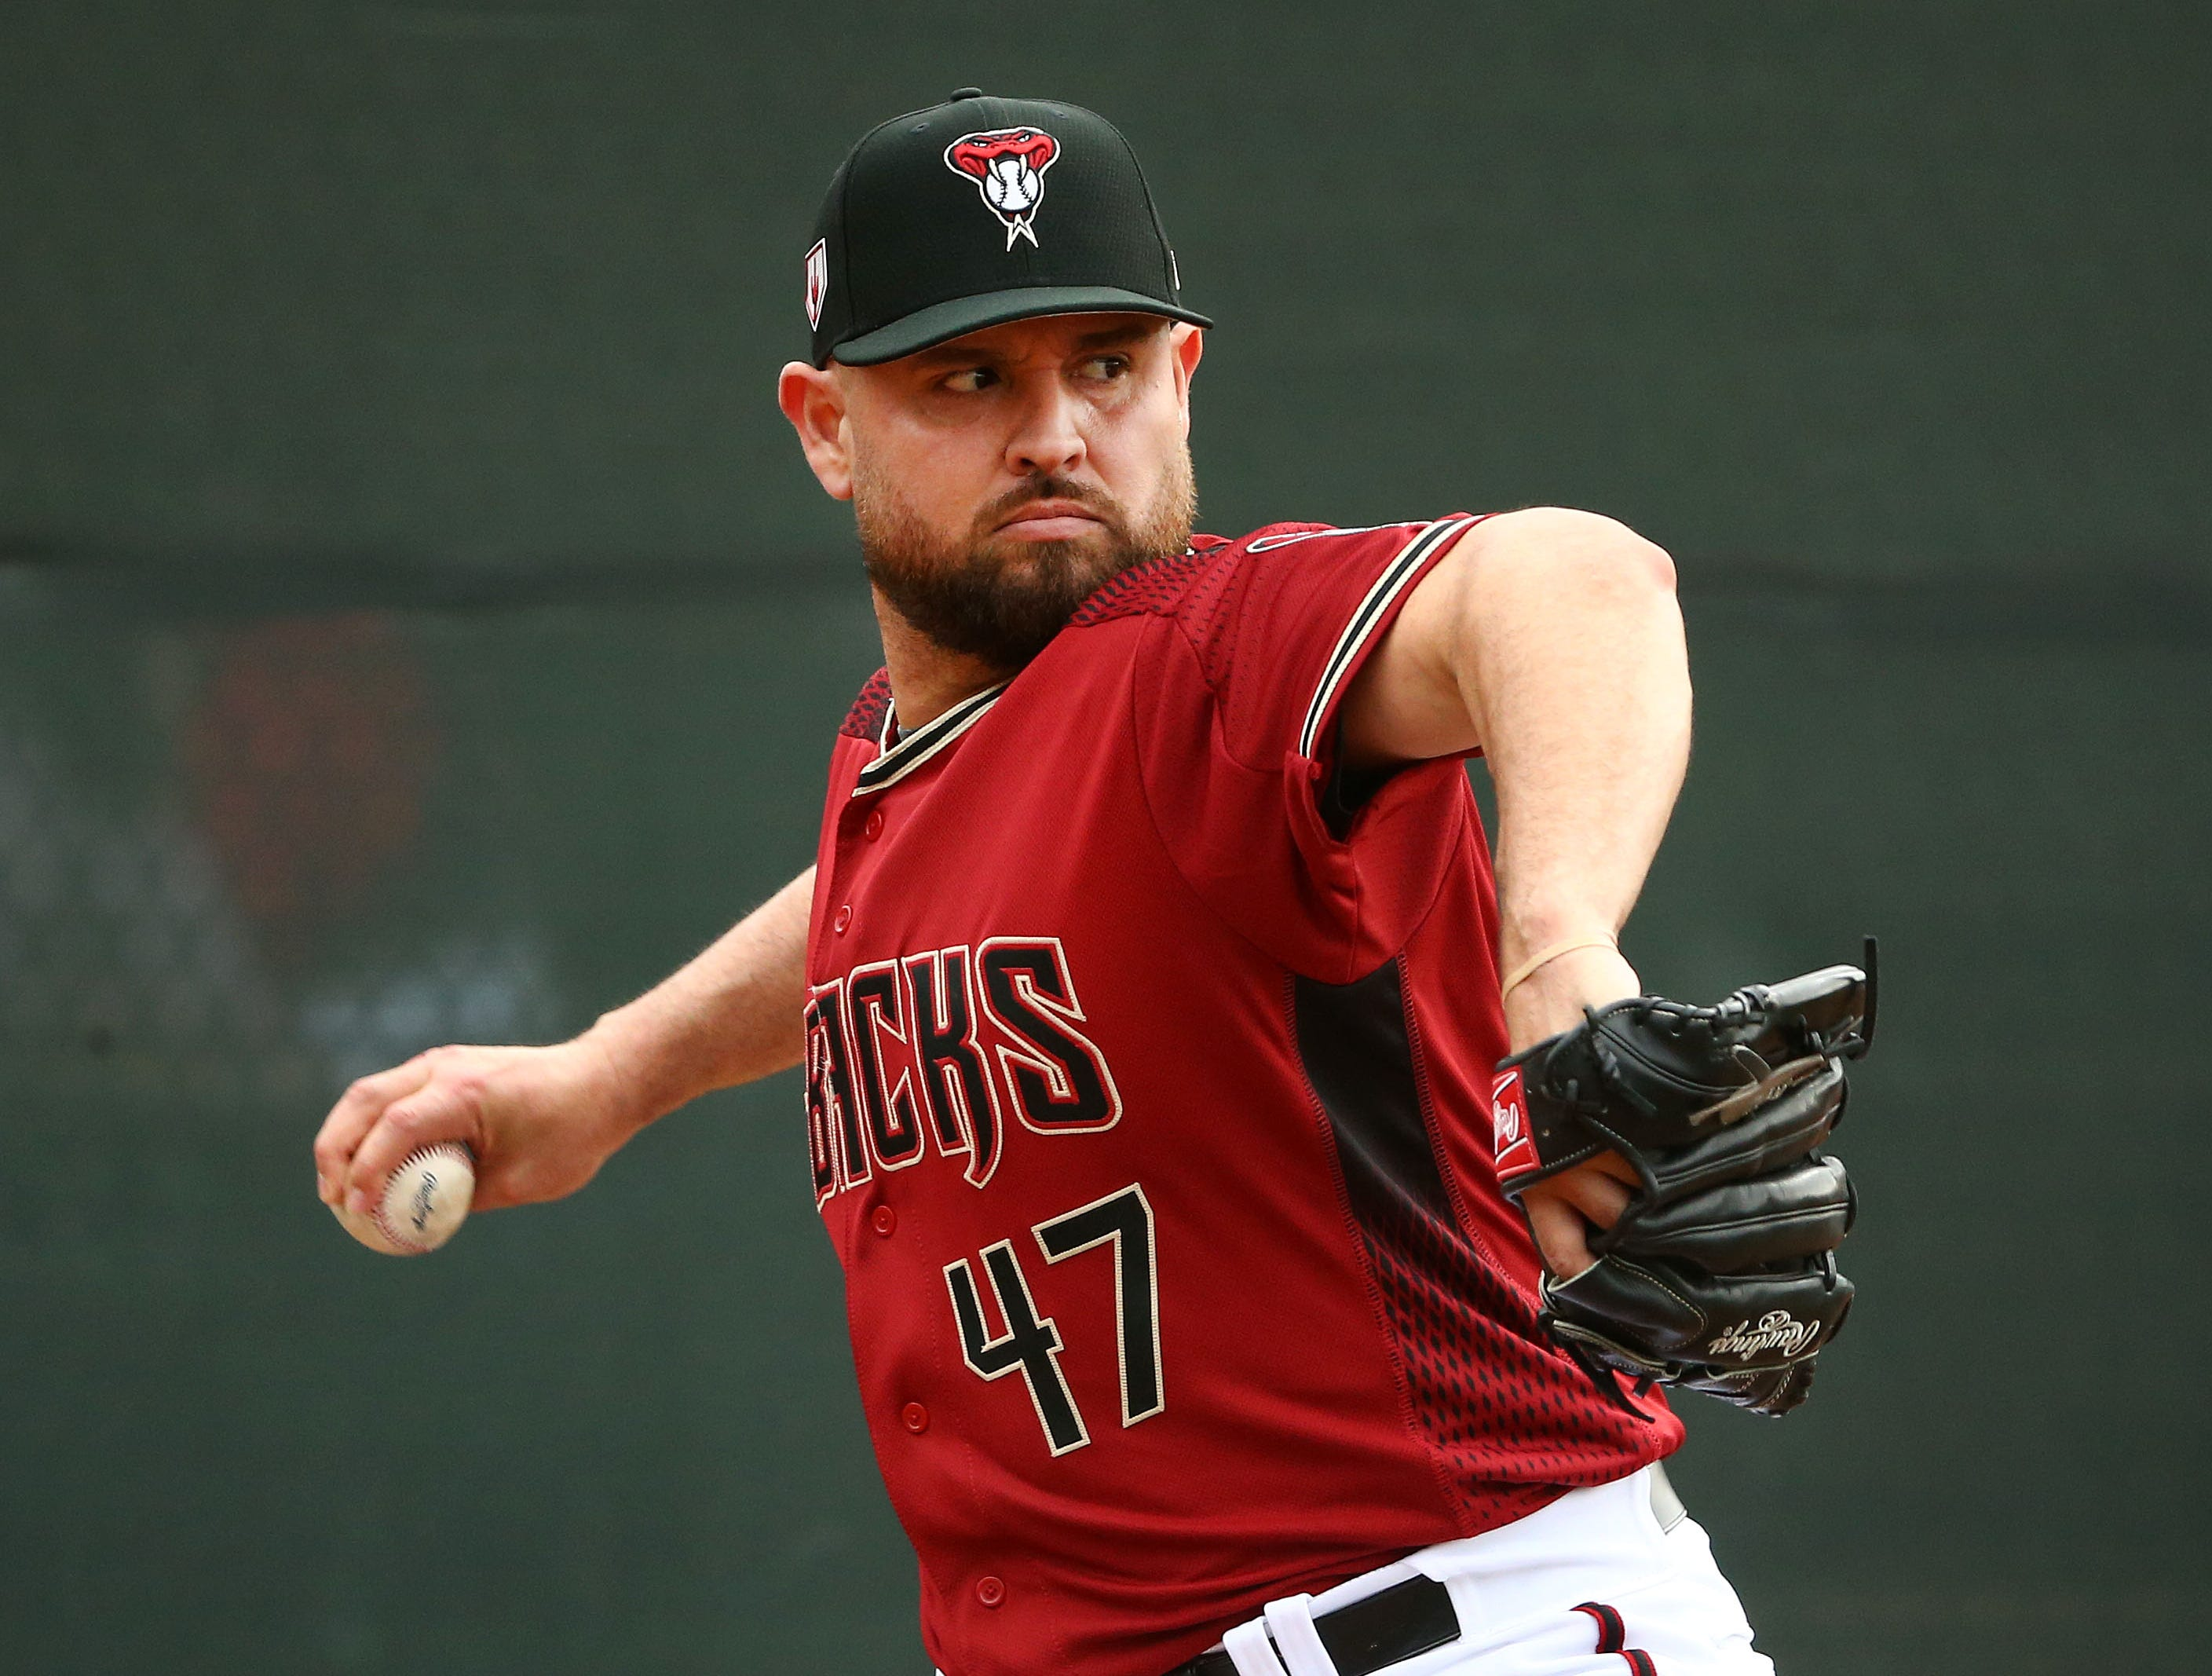 Arizona Diamondbacks pitcher Ricky Nolasco during the first day of spring training workouts on Feb. 13 at Salt River Fields in Scottsdale.